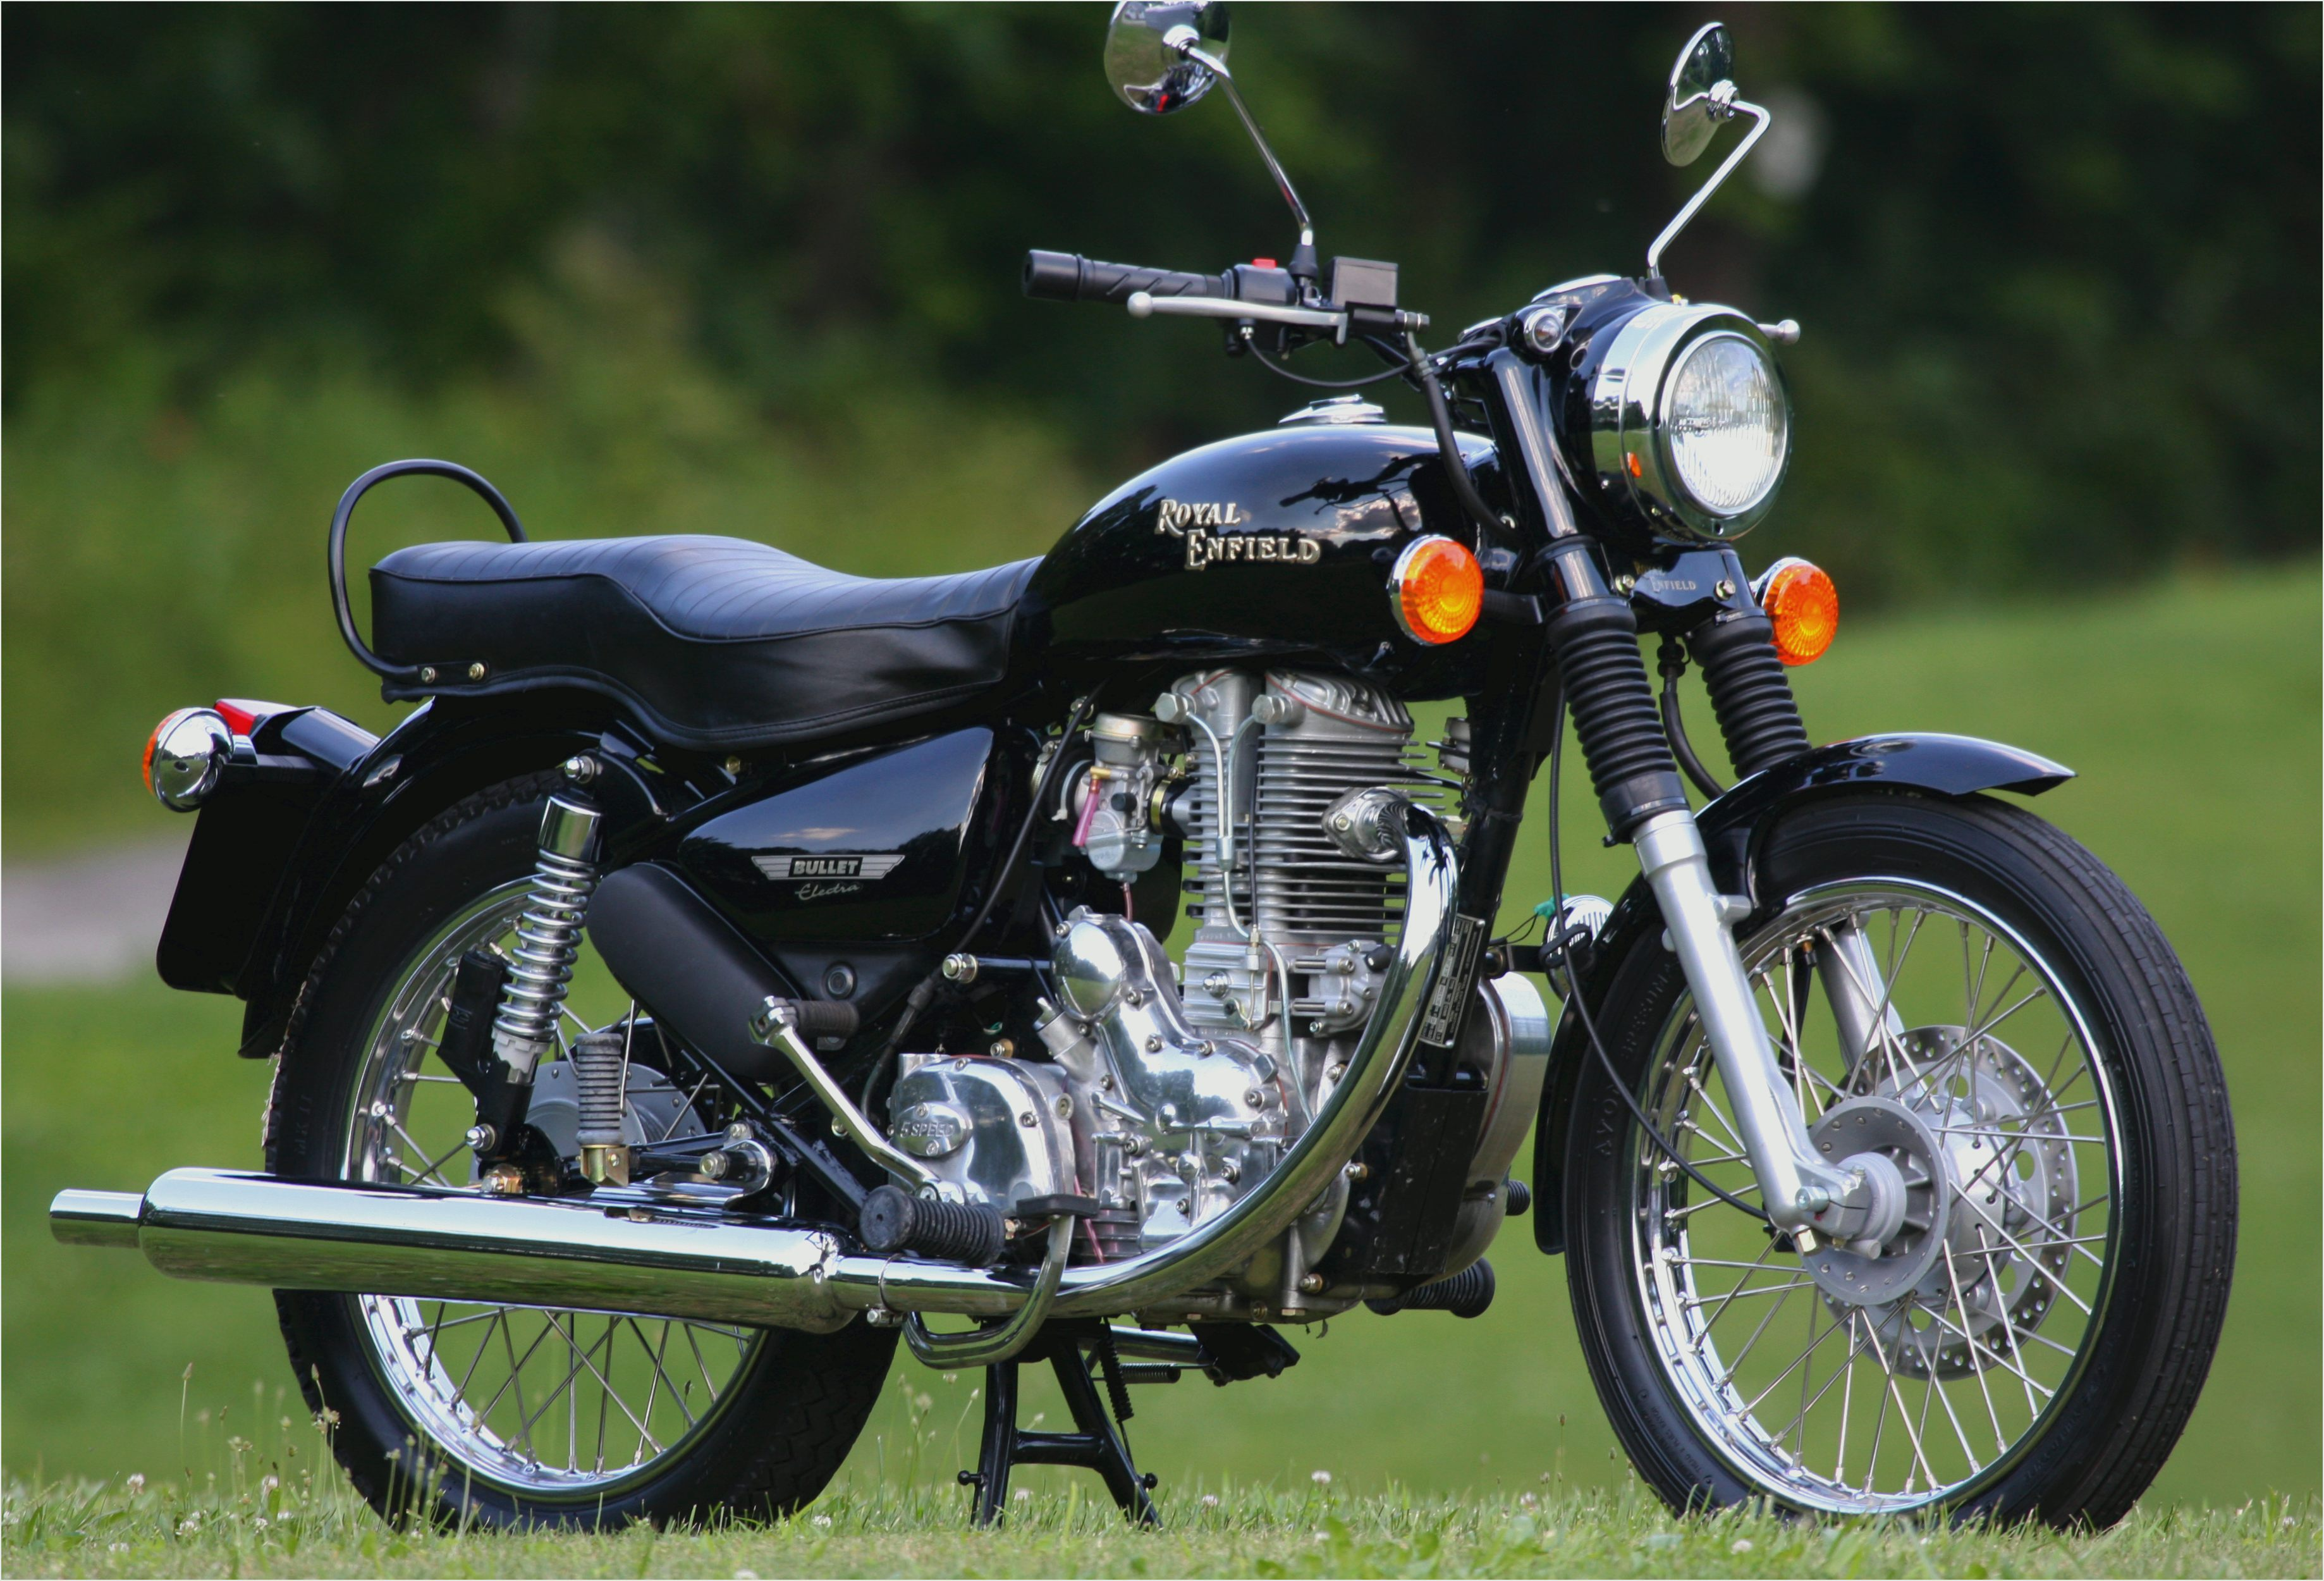 Royal Enfield Bullet 500 S Clubman 2007 images #127015